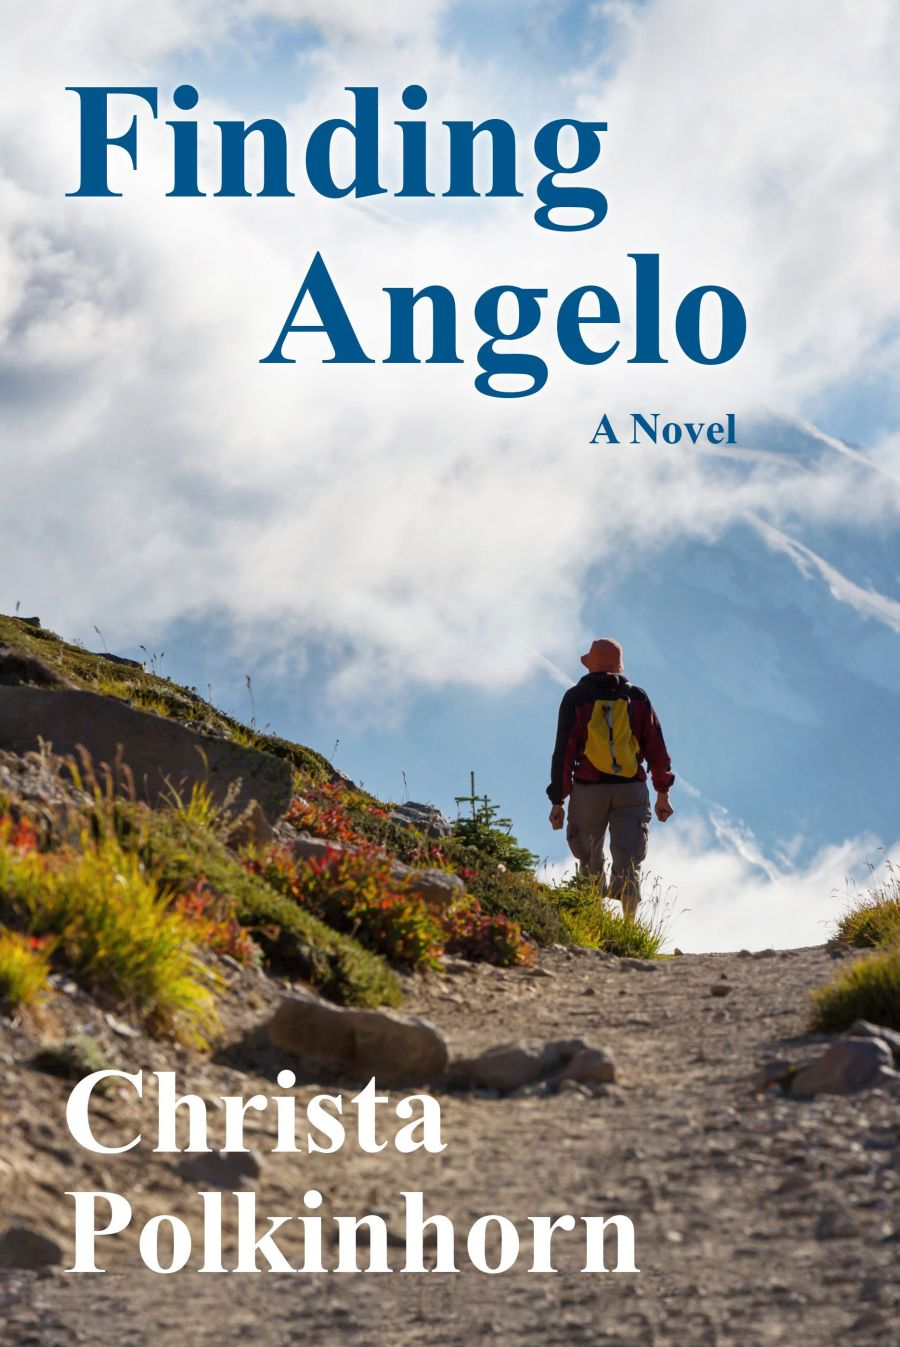 Finding Angelo (The Wine Lover's Daughter, Book 2).